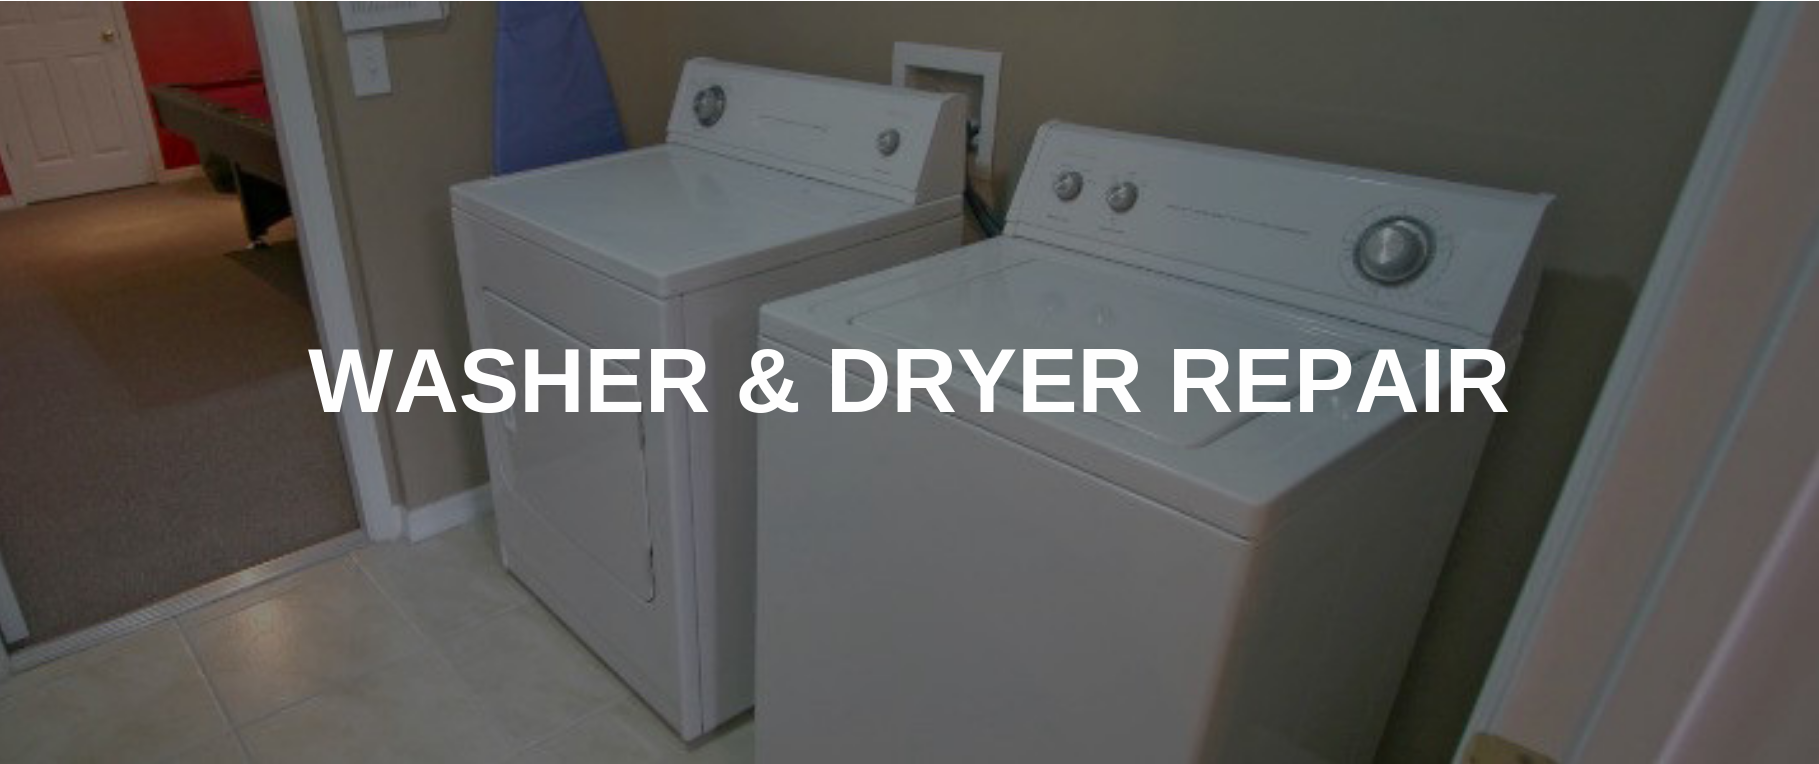 washing machine repair brentwood